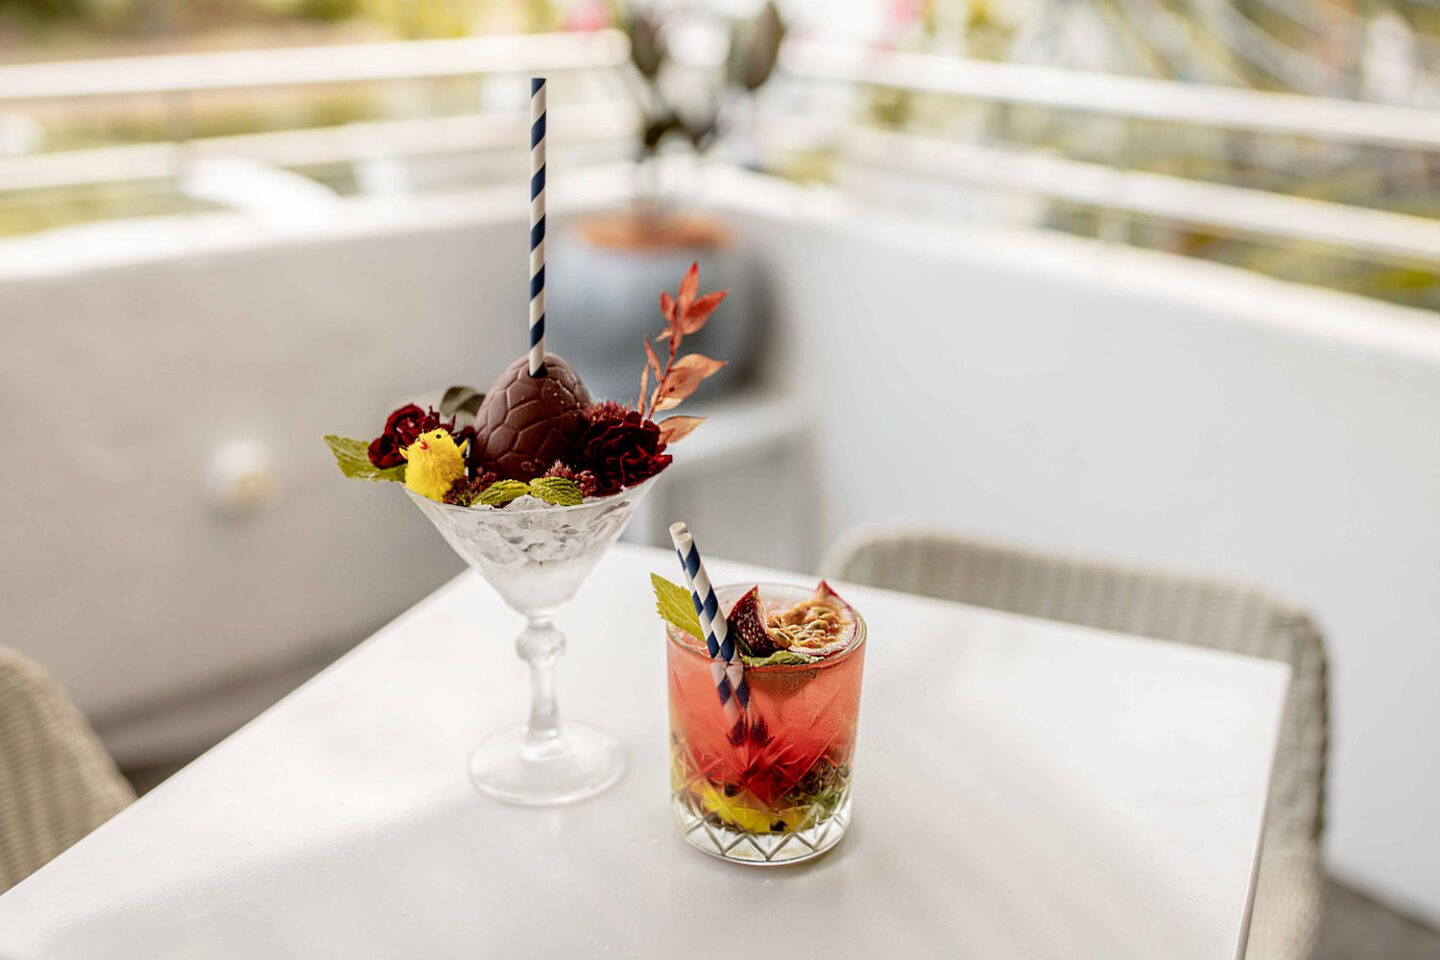 noosa-best-restaurant-hotel--kelseyinlondon-kelsey-heinrichs-what-to-do-in-noosa-Sofitel-Noosa-Pacific-Resort-5